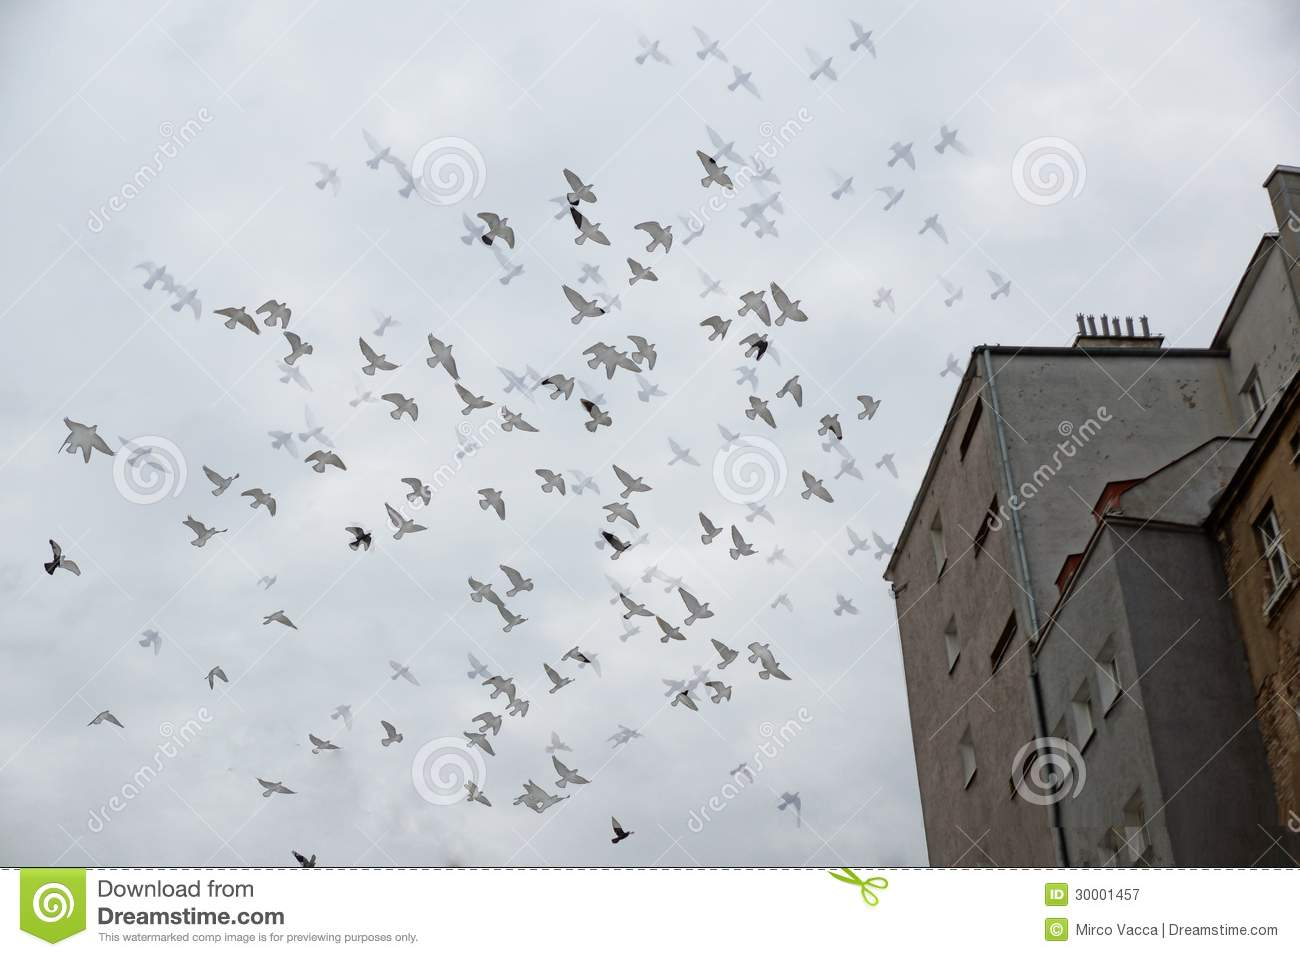 Royalty Free Stock Photography Group Birds Flying Over Building Image3...